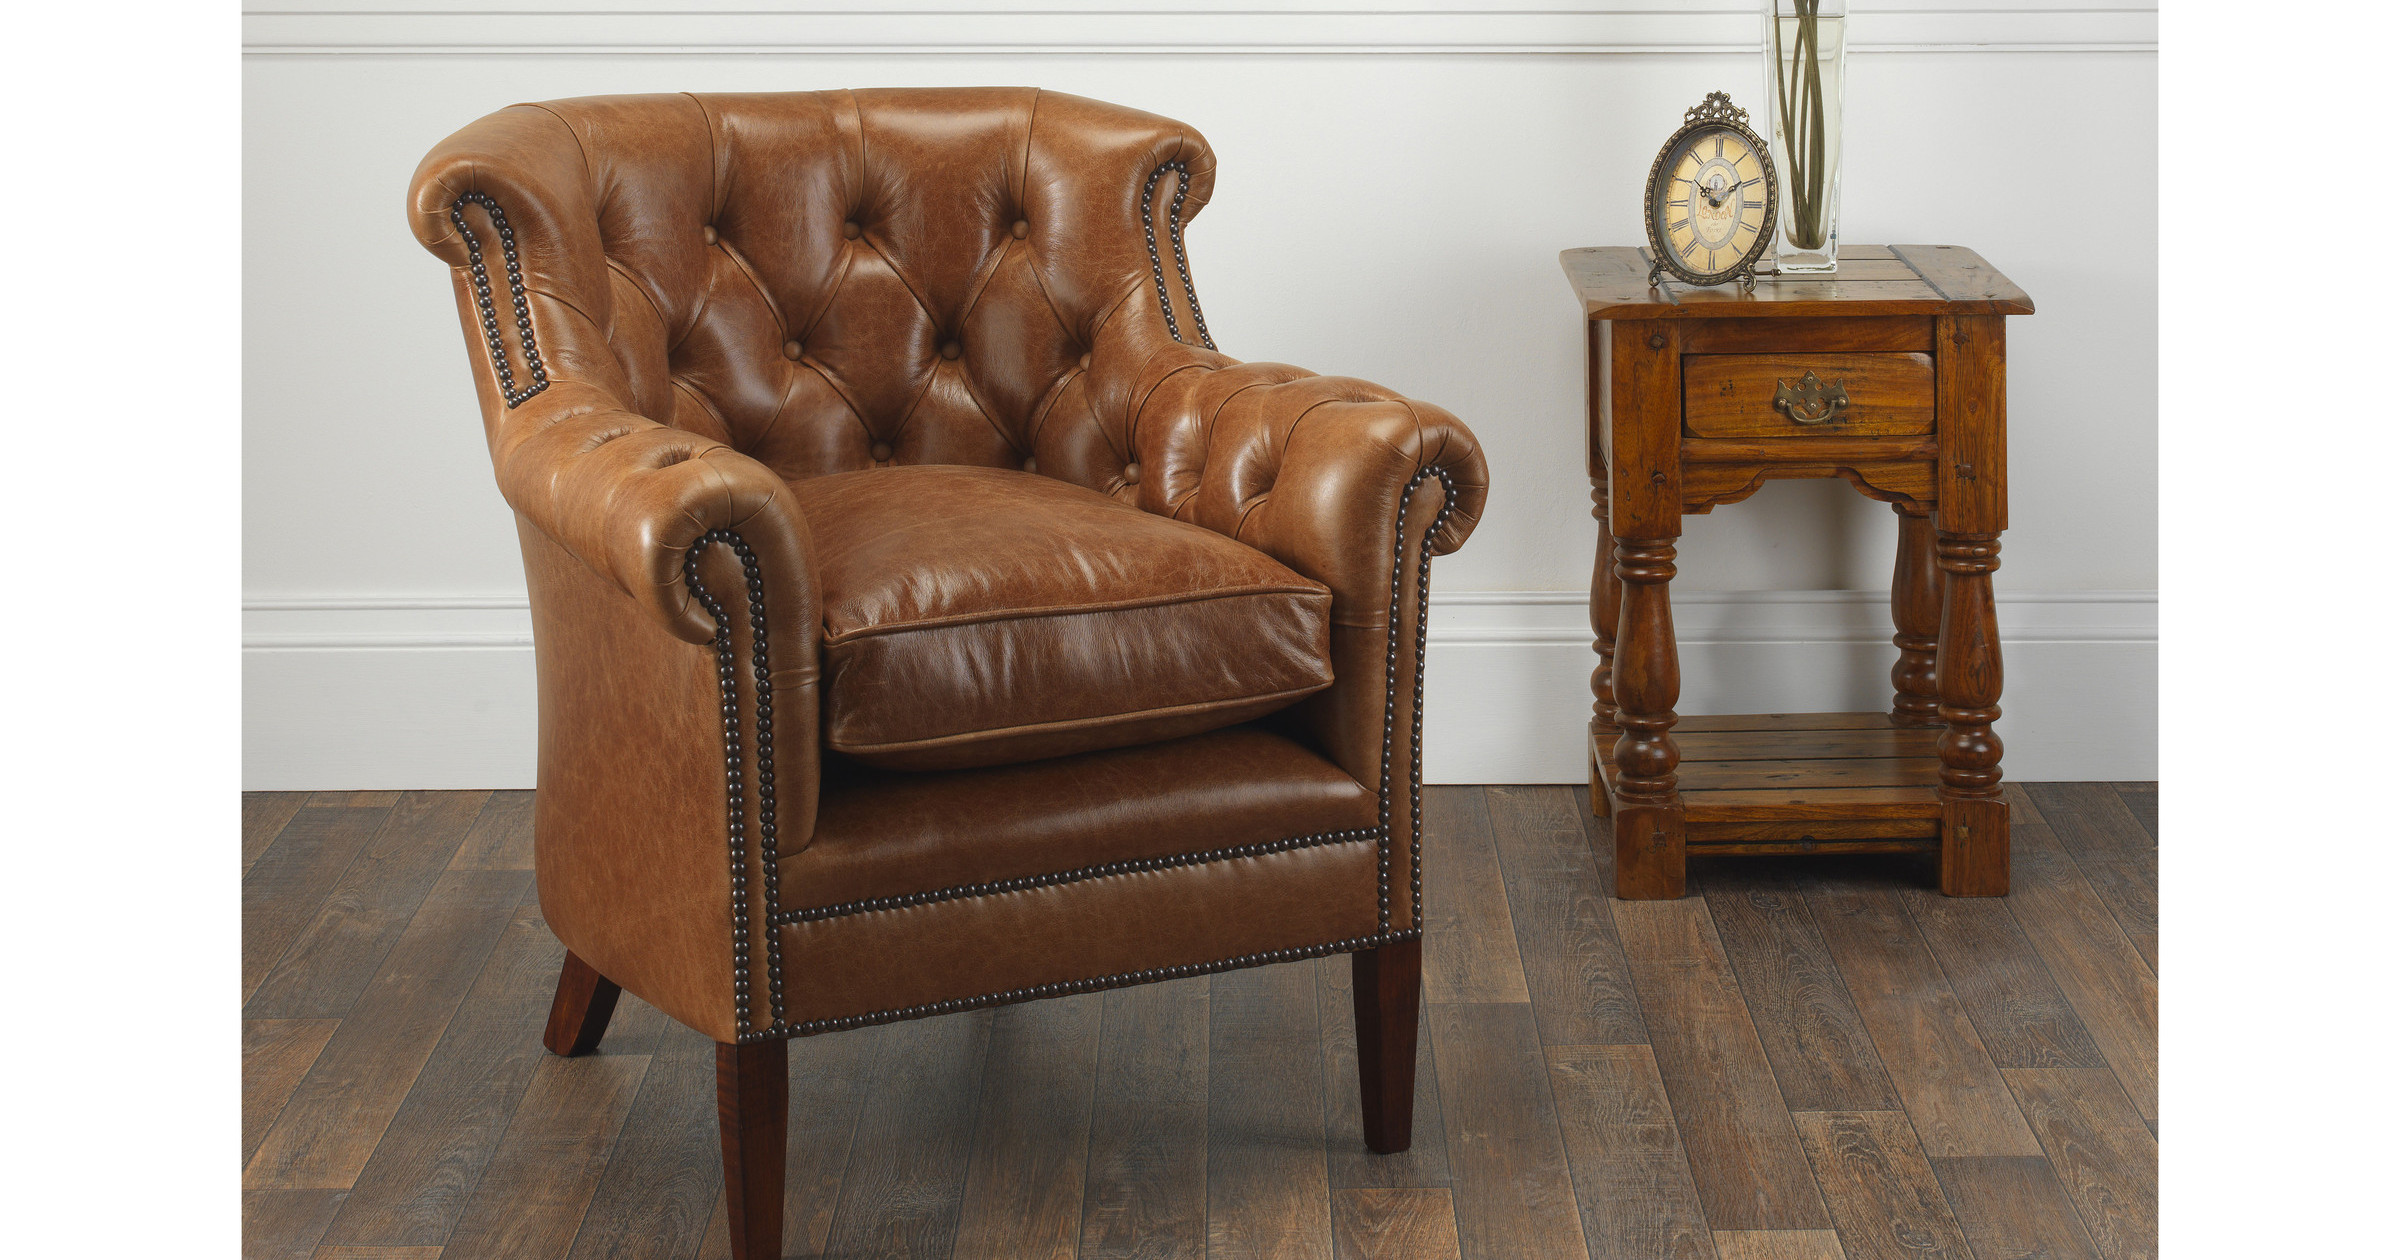 Kensington Chairs  Russkell Furniture